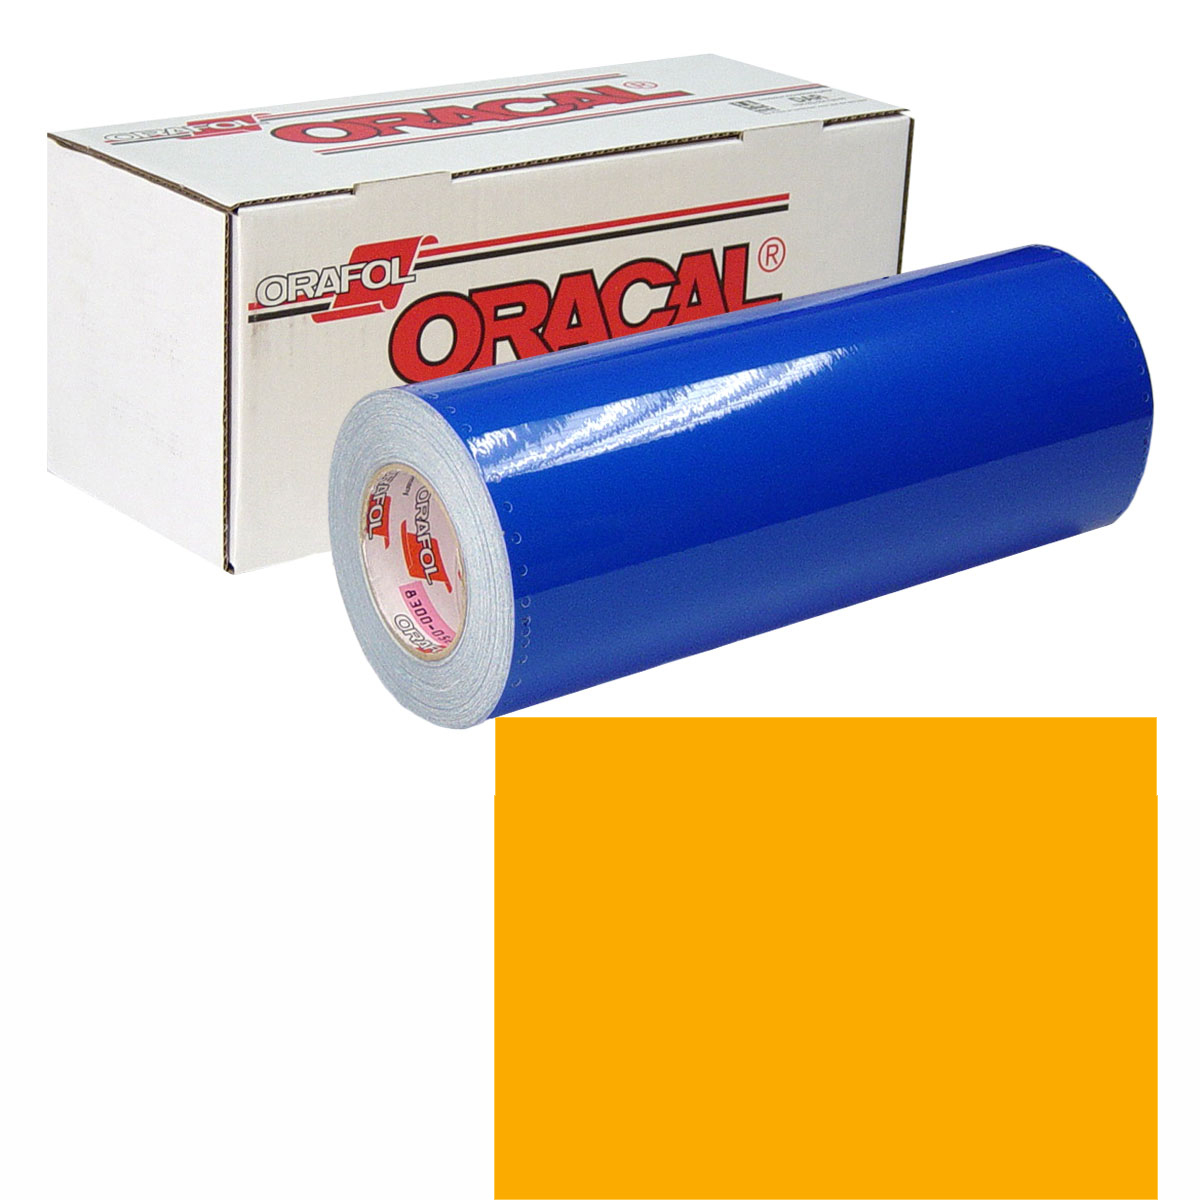 ORACAL 631 Unp 48in X 10yd 020 Golden Yellow